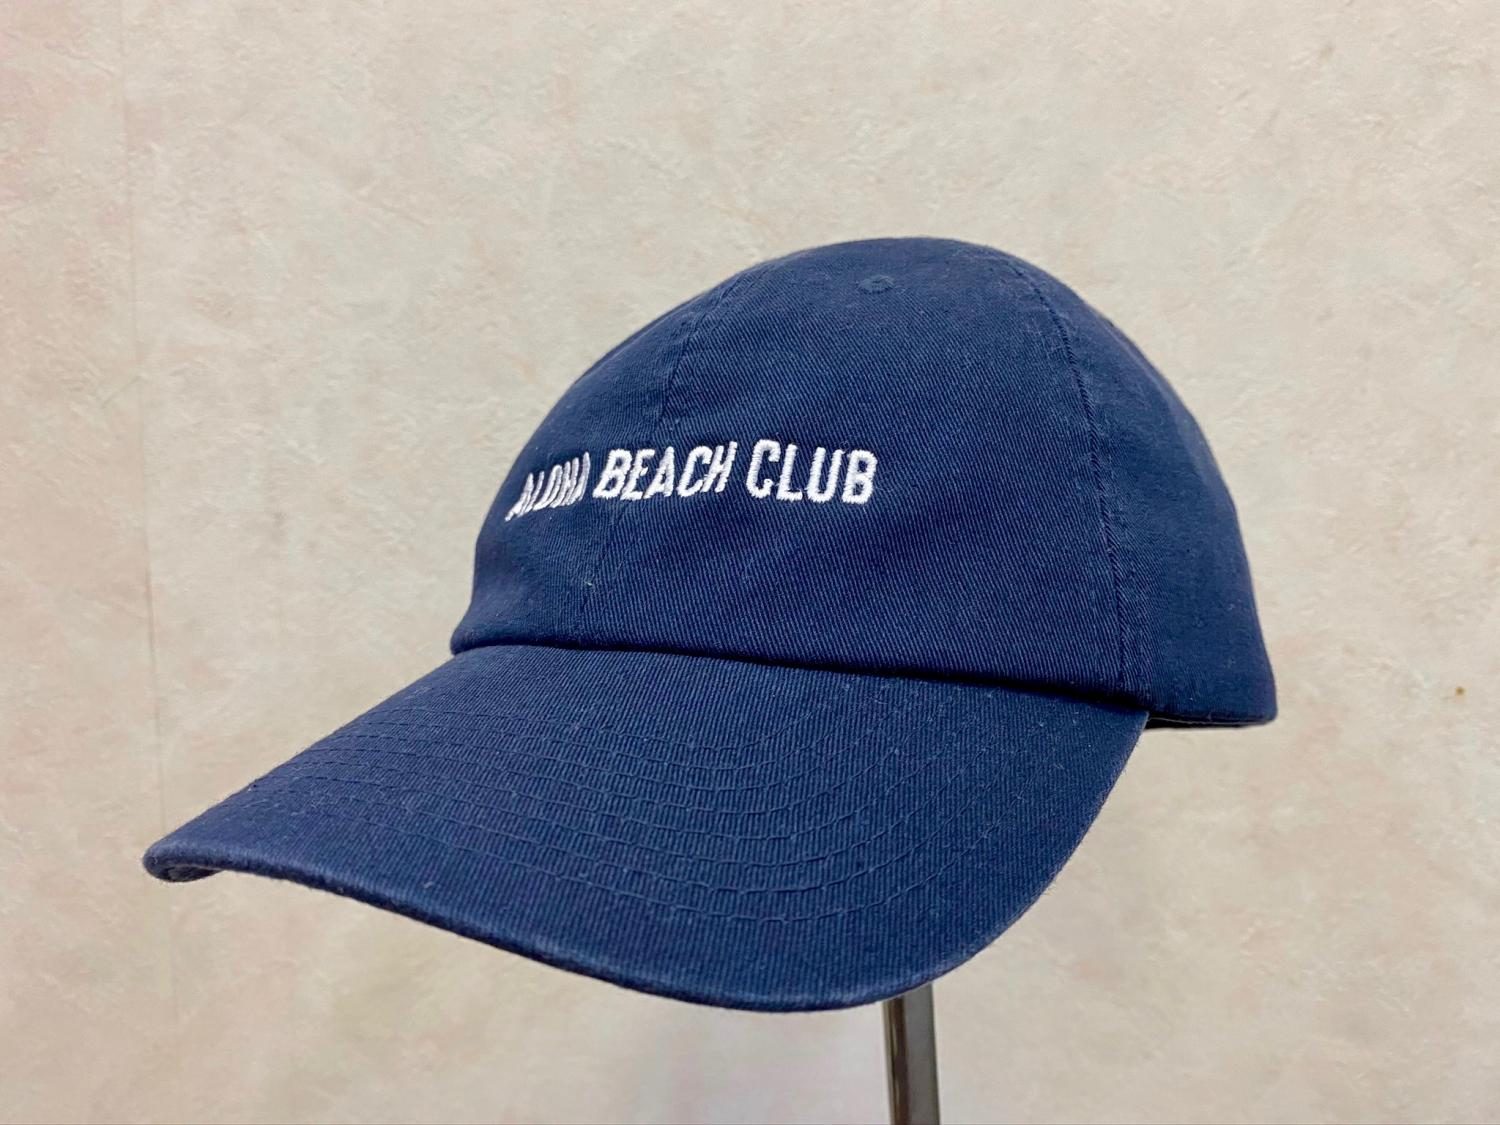 Aloha Beach Club - ABC 6-panel Polo Cap Navy